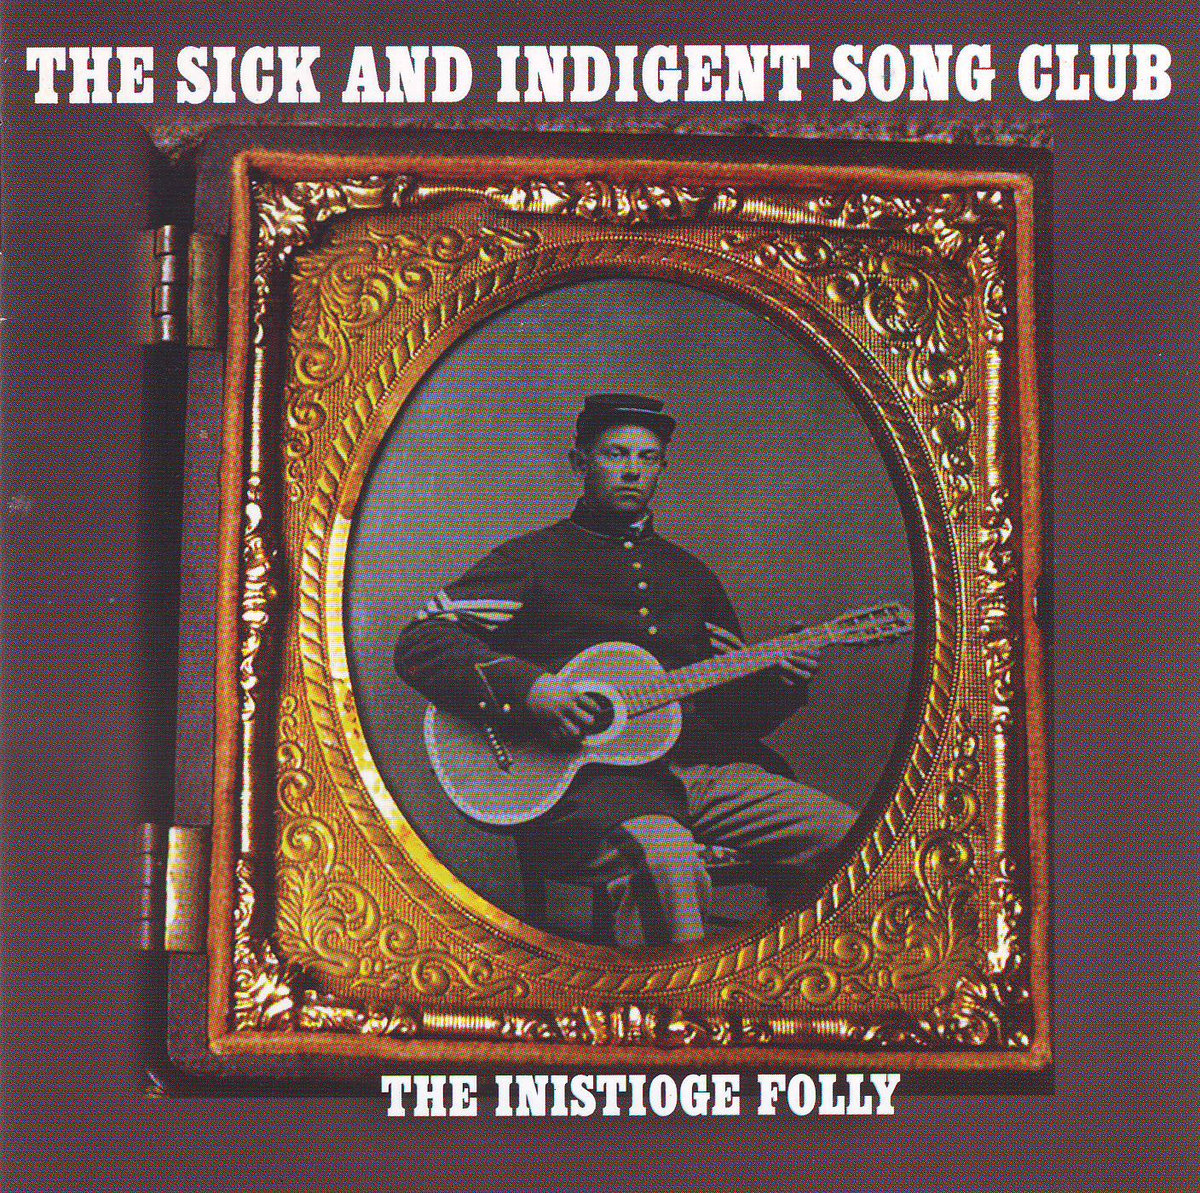 Bill Bailey (Won't You Please Come Home) | The Sick & Indigent Song Club